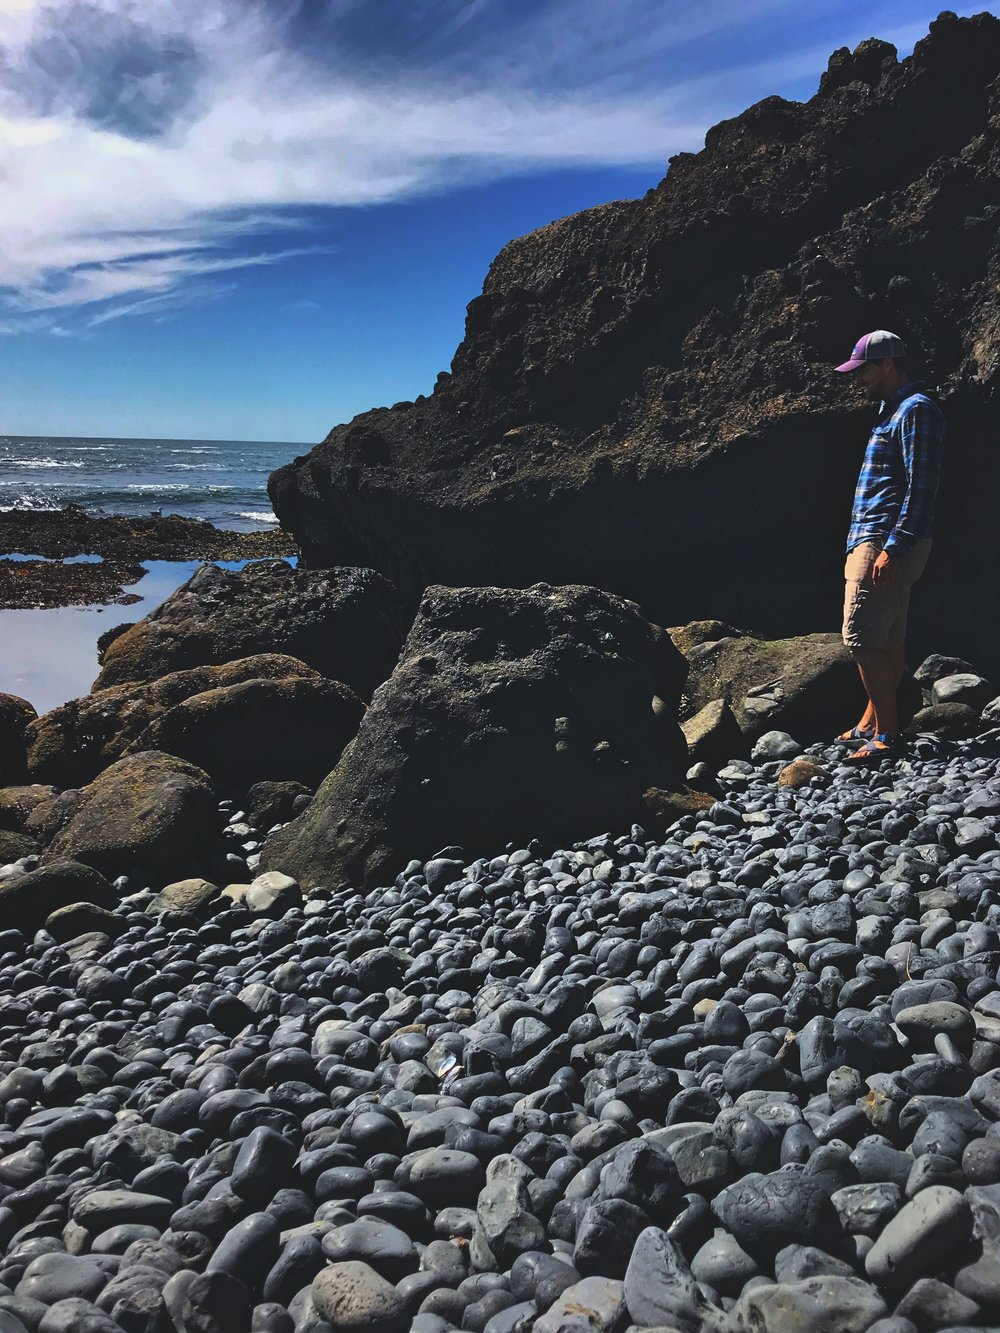 Ian checks out some of the tidal pools at Yaquina Head.